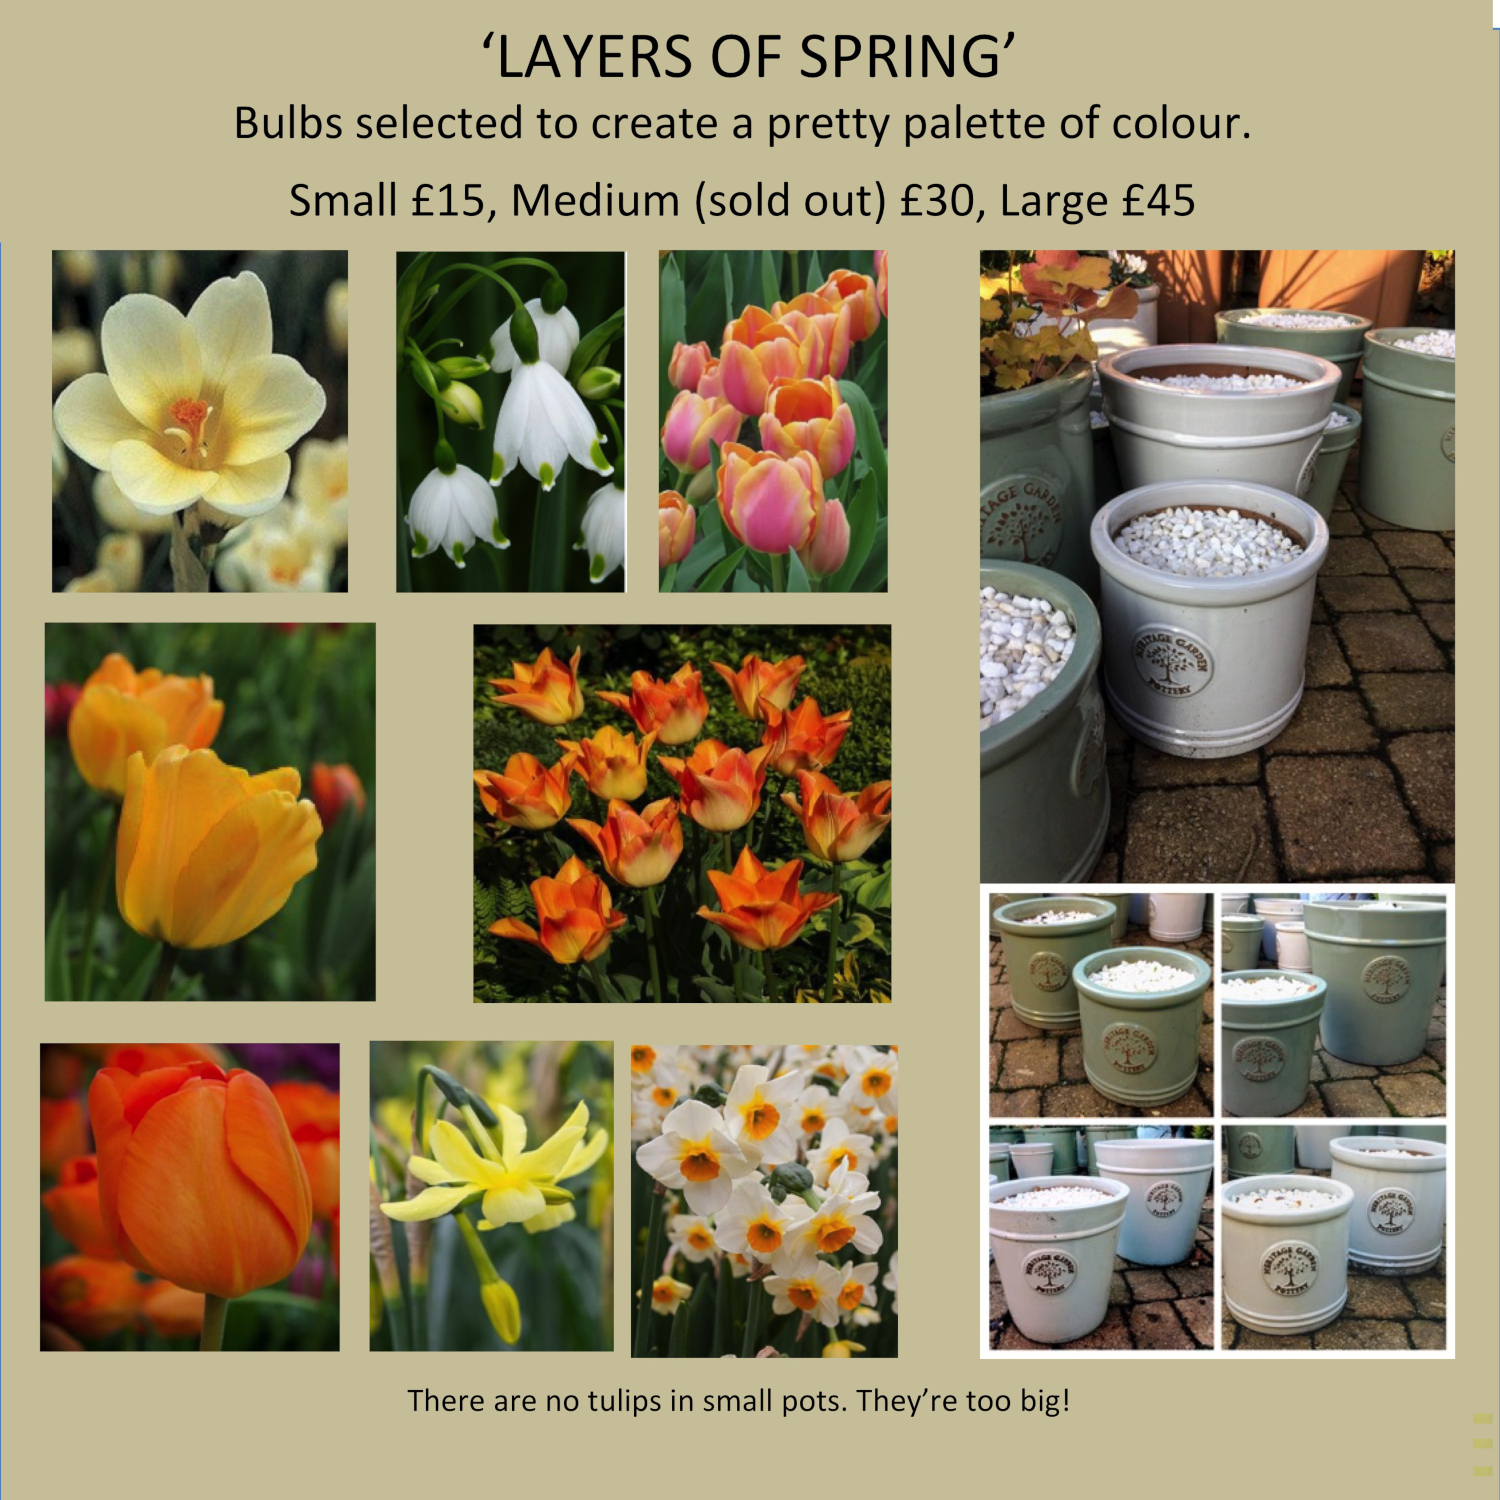 layers-of-spring-bulbs-in-woodlodge-pots-daffodils-tulips-snowdrops-crocuses-pots-and-pateriors-edinburgh.jpg